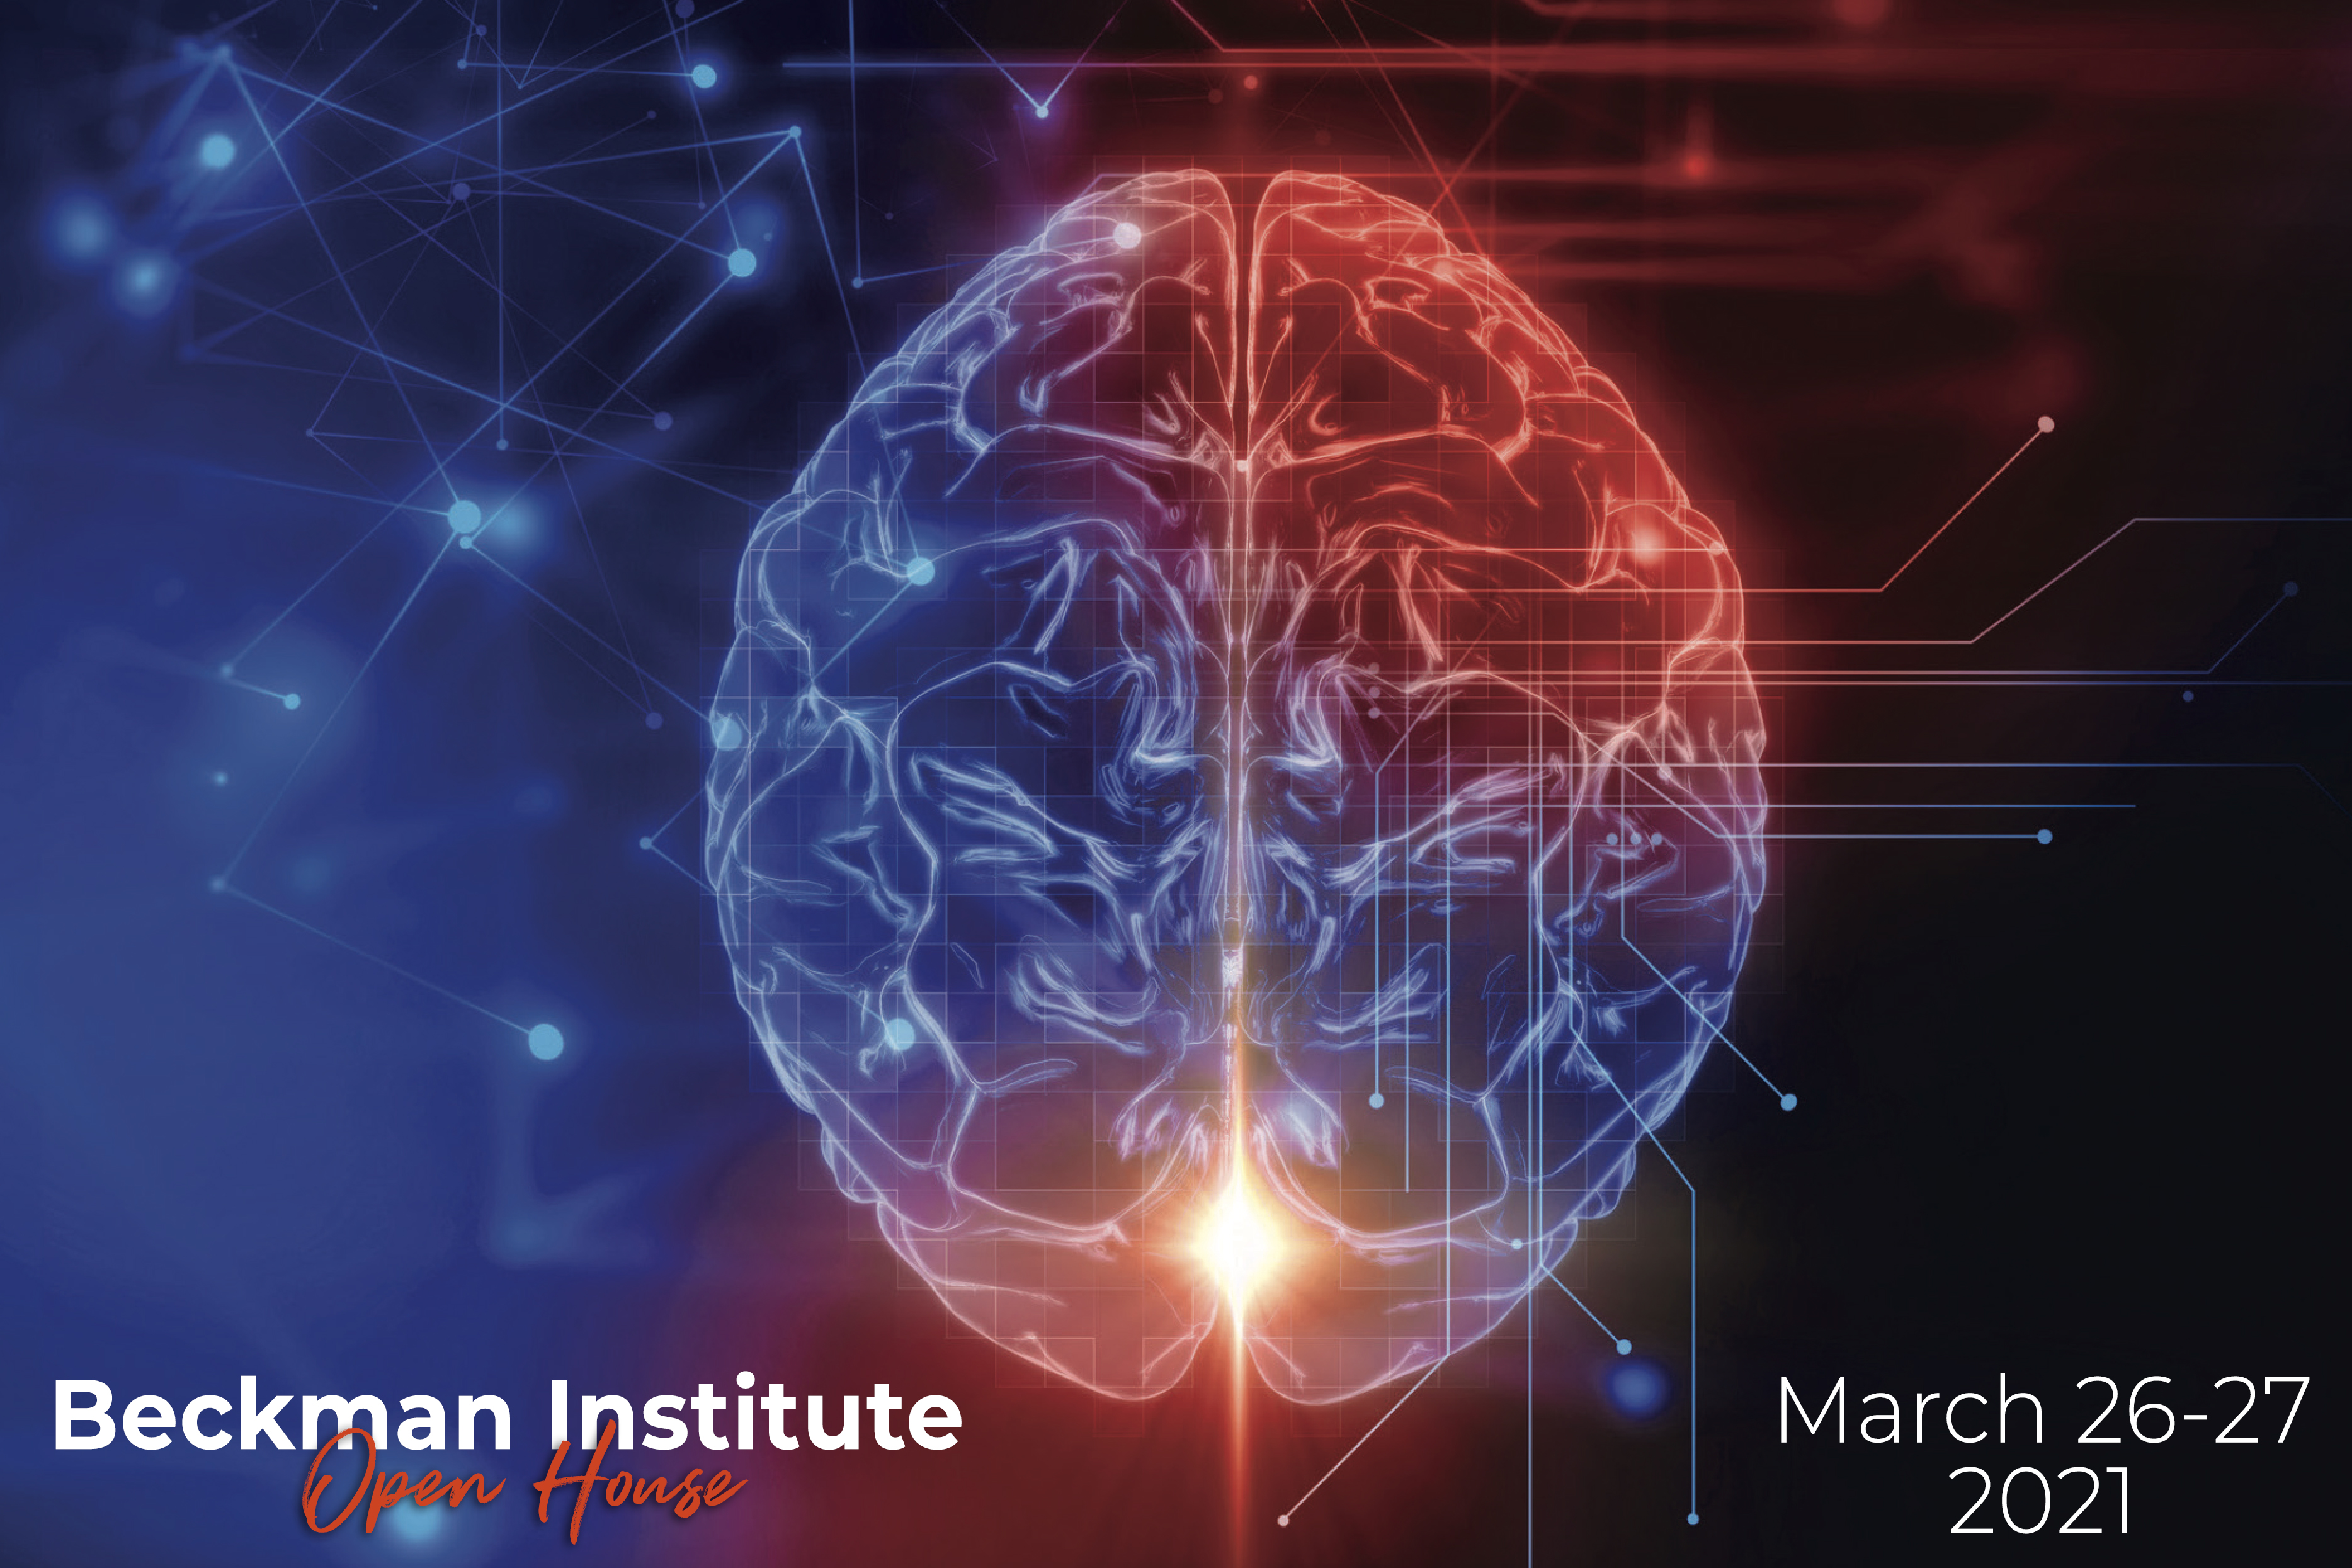 Beckman Institute Open House, March 26-27